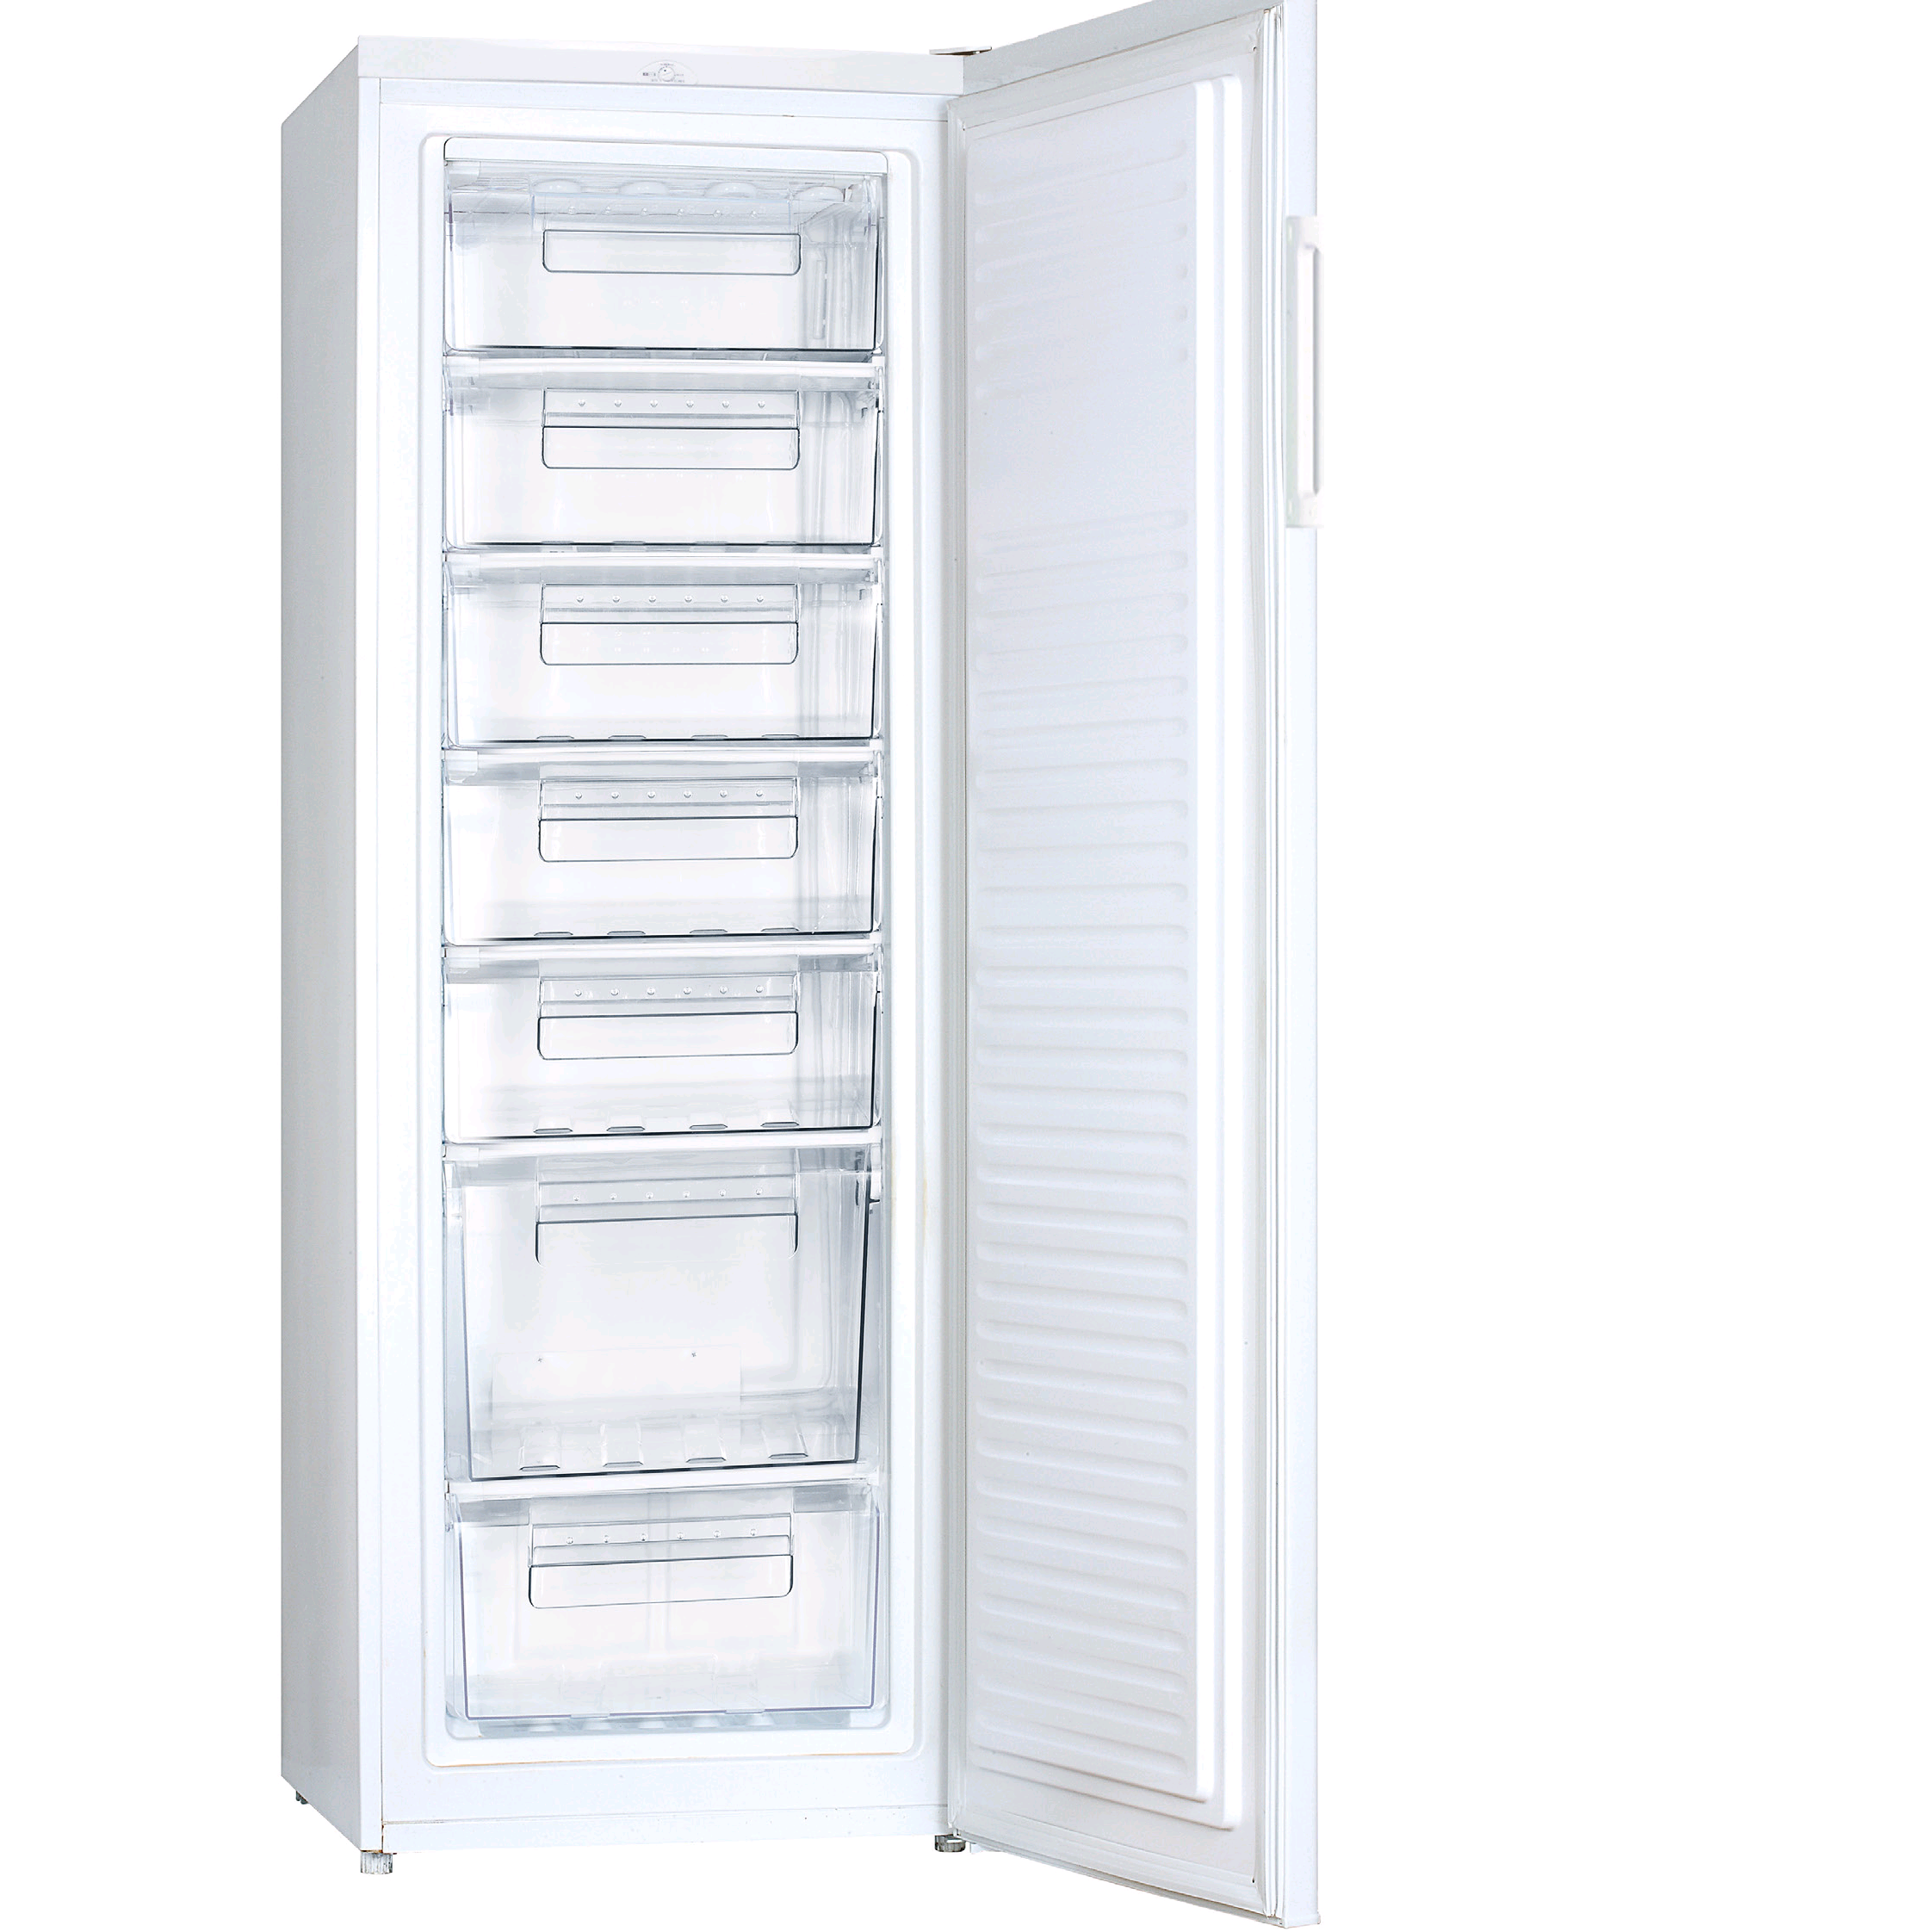 Statesman TF170LW Tall Upright Freezer, 60 cm Wide, Height 170cm, Depth 60cm, White 2 Year Warranty